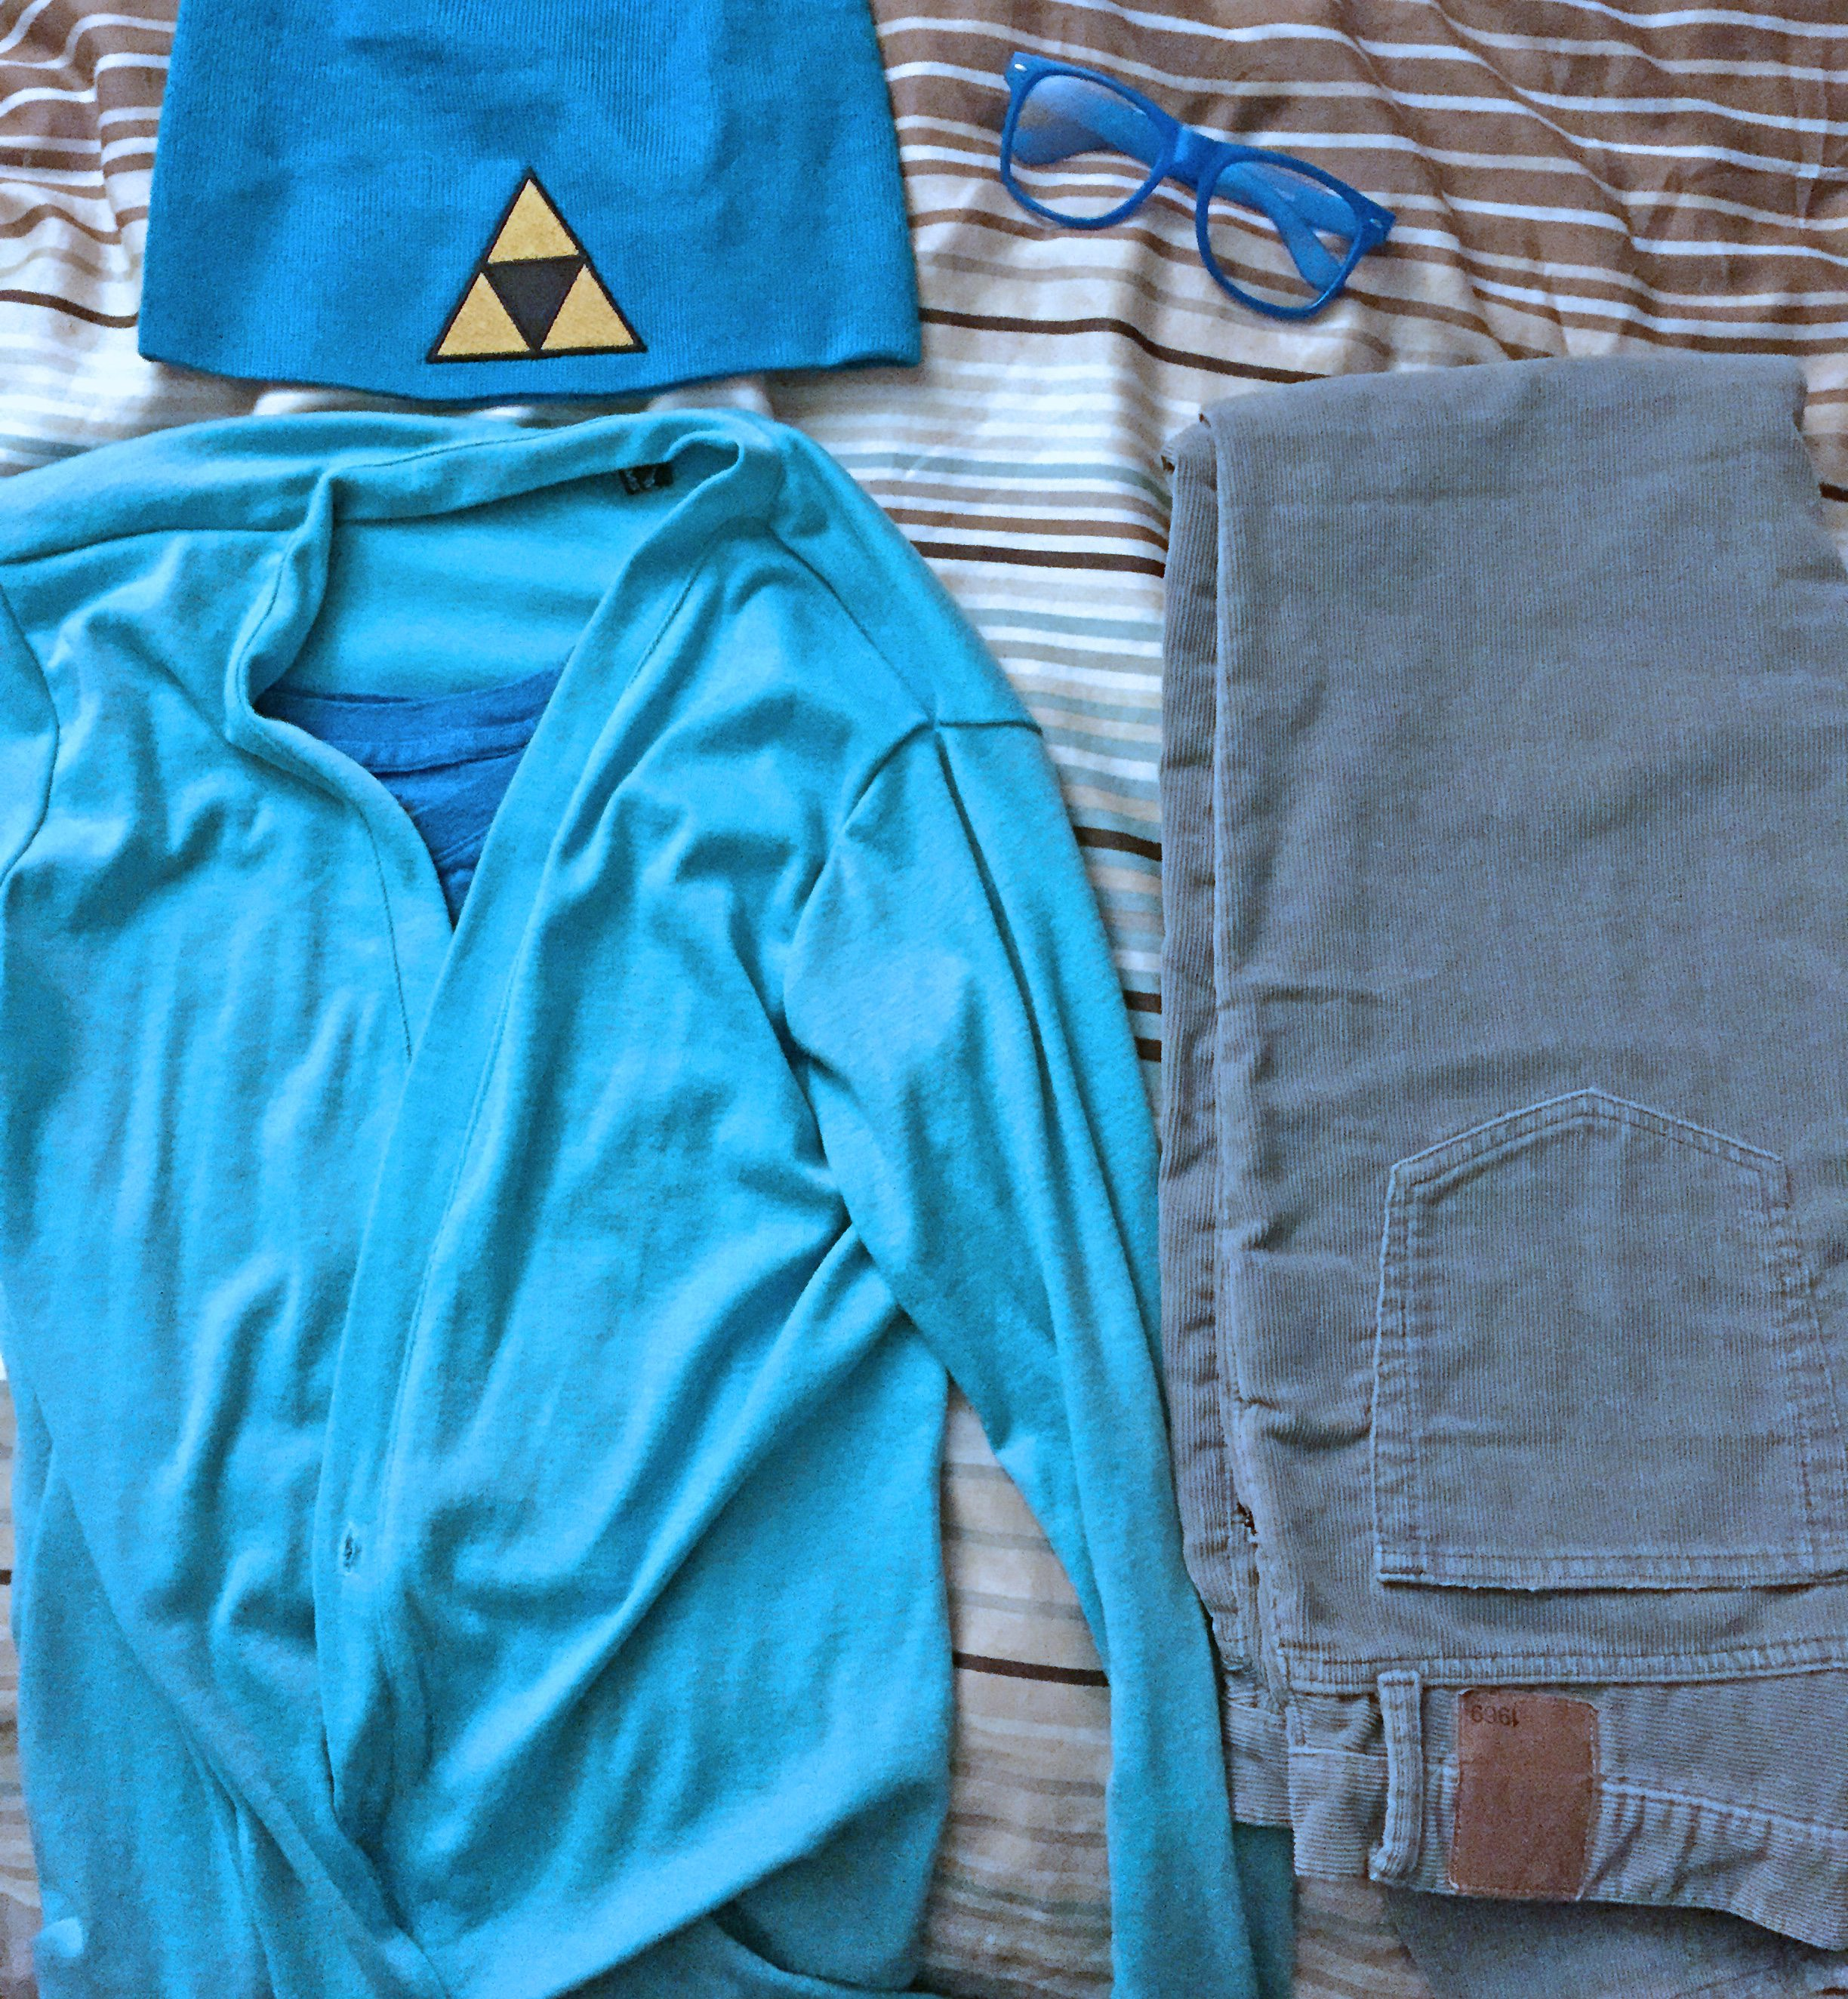 Hipster Navi attire. Photo by Will James.